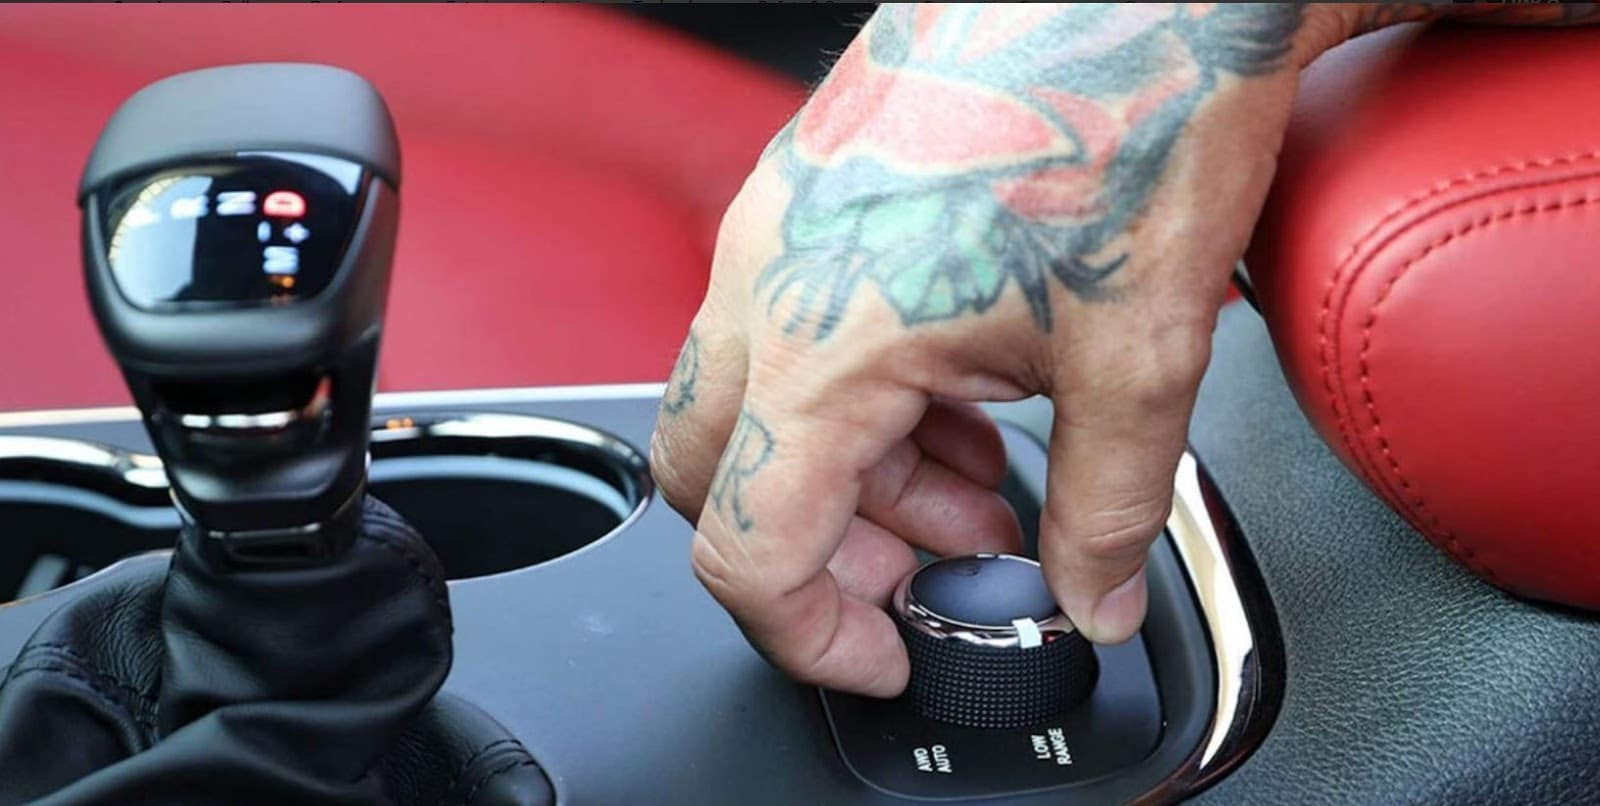 tattooed hand holding knob on dodge durango srt against bright red interior